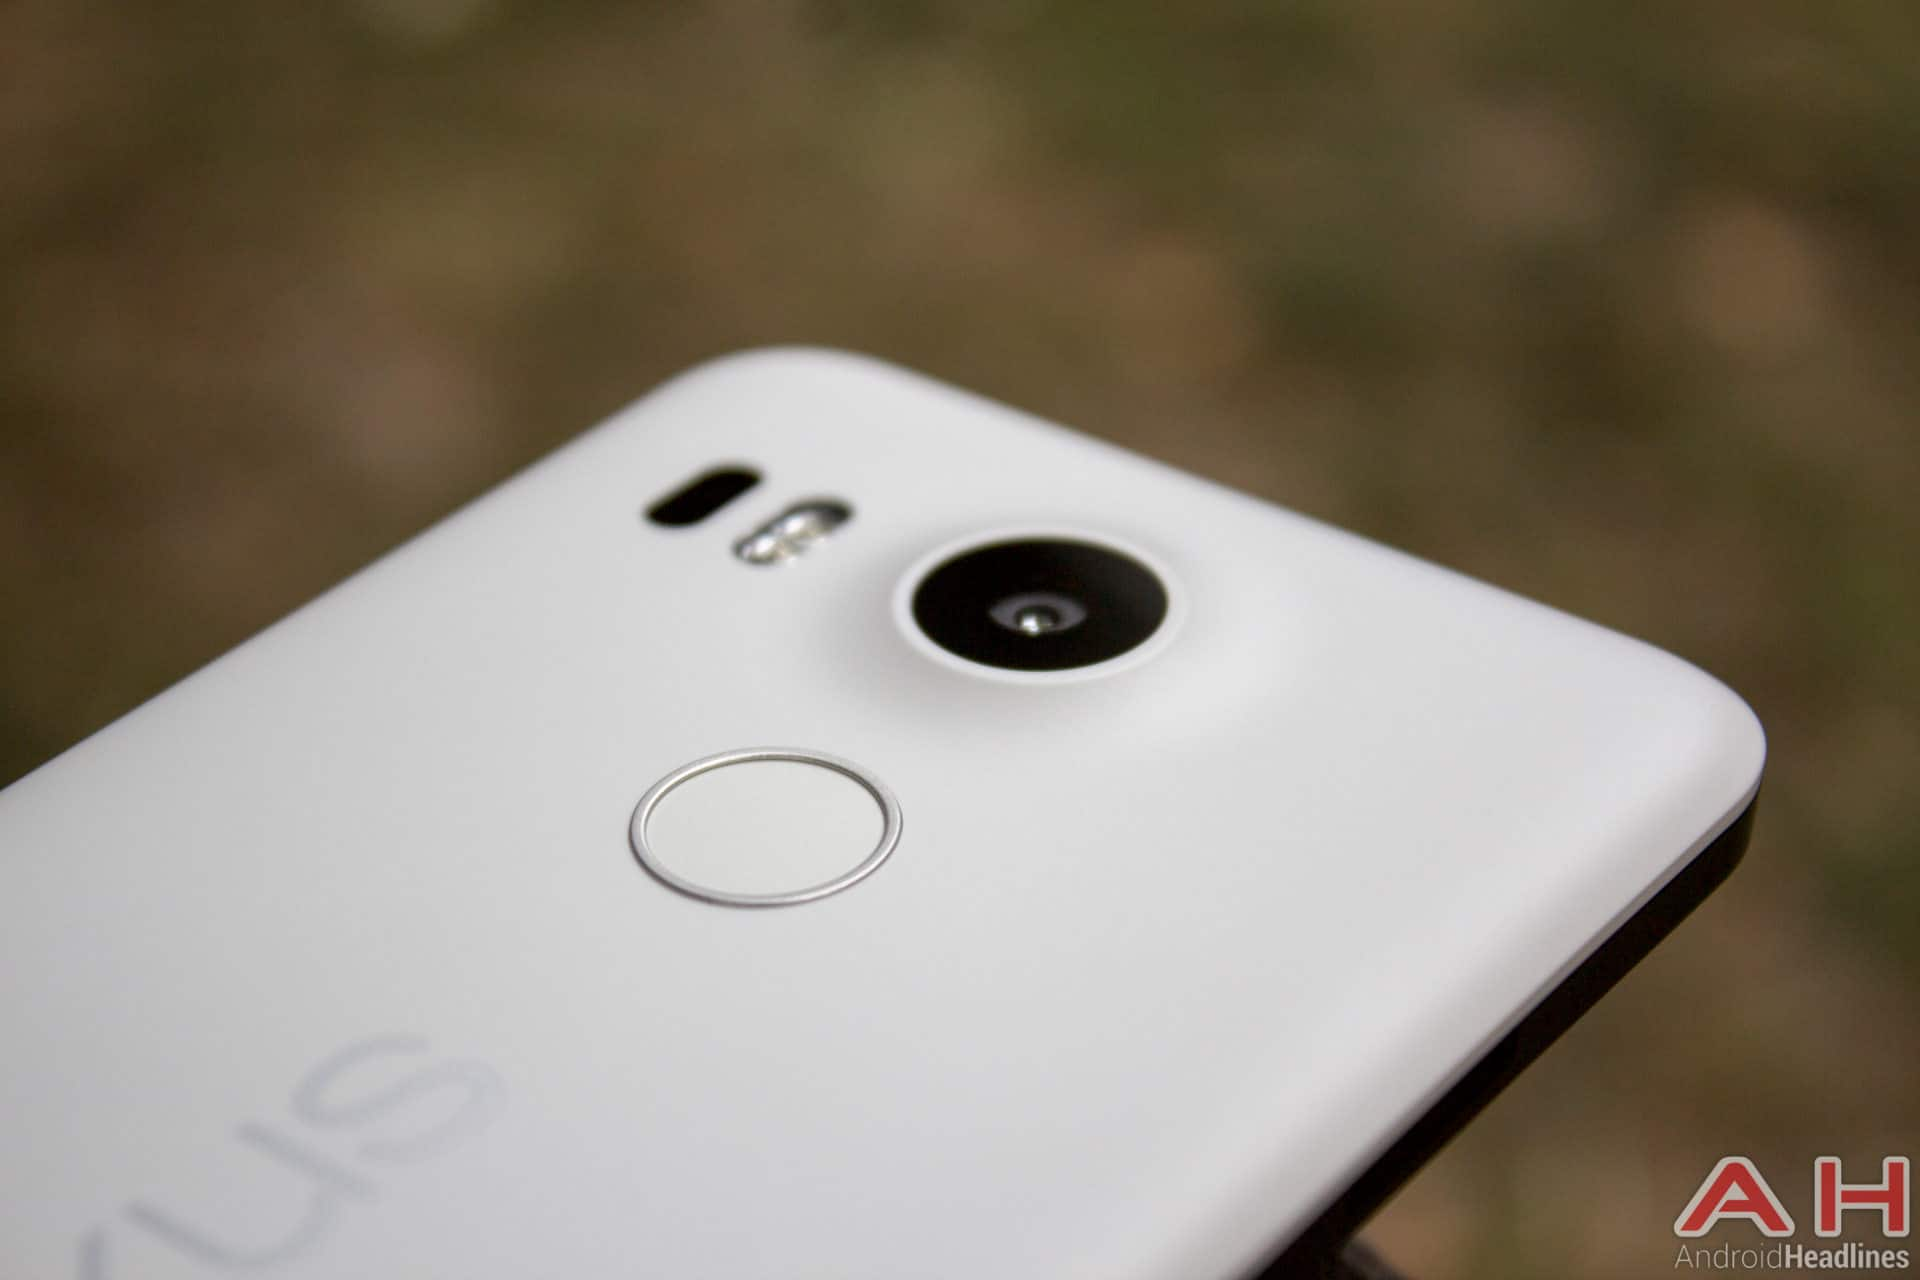 Nexus 5x AH fingerprint scanner